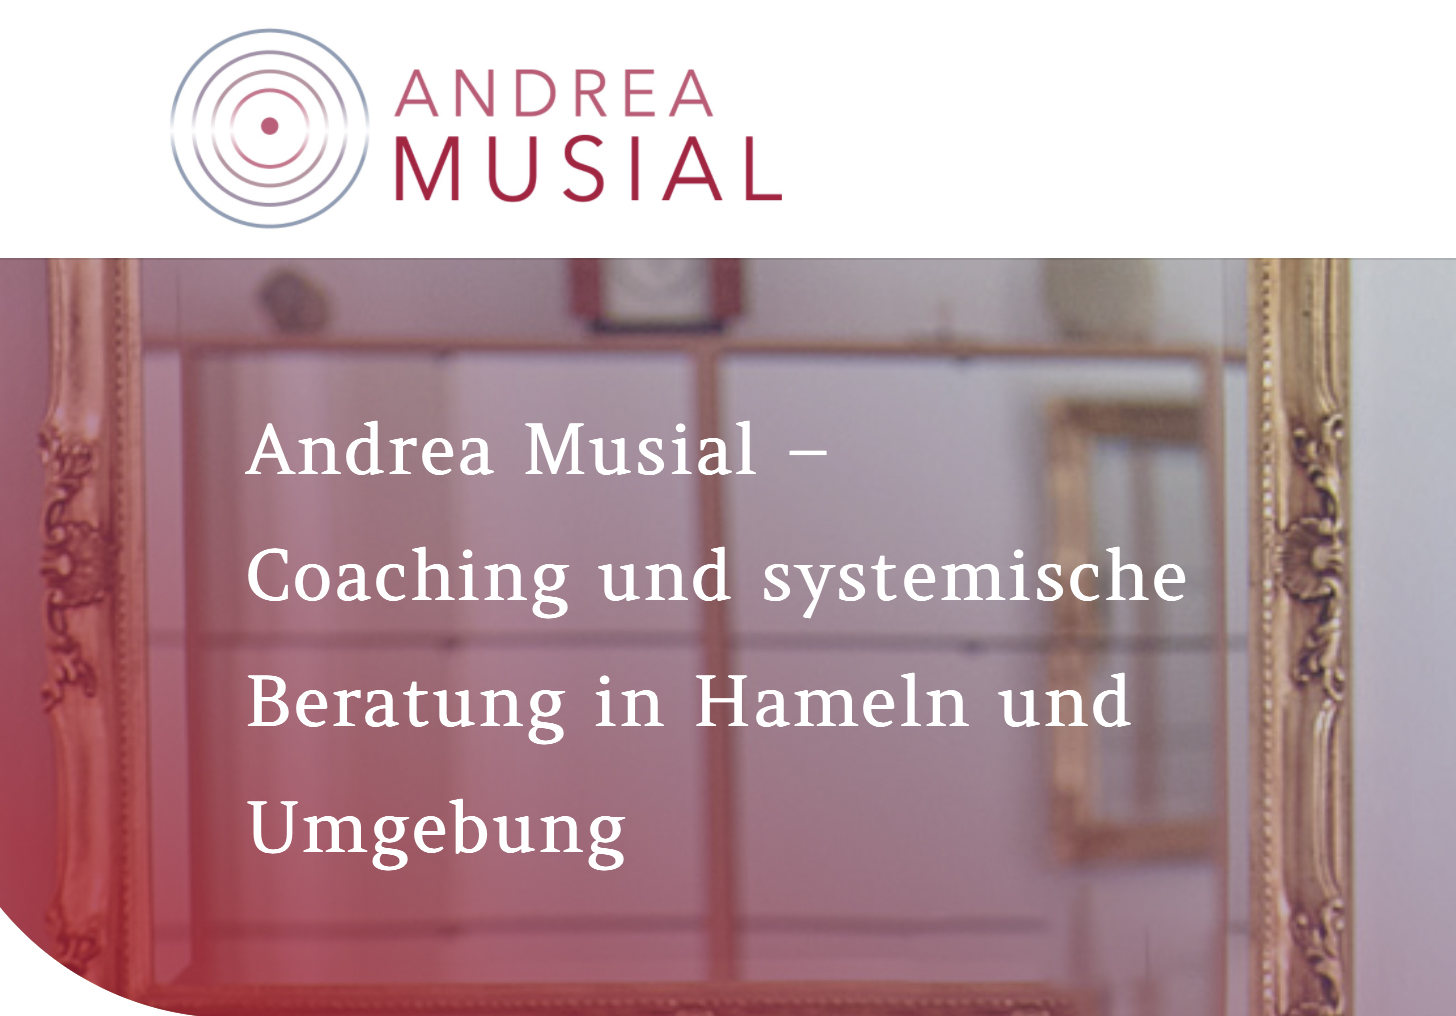 Andrea Musial